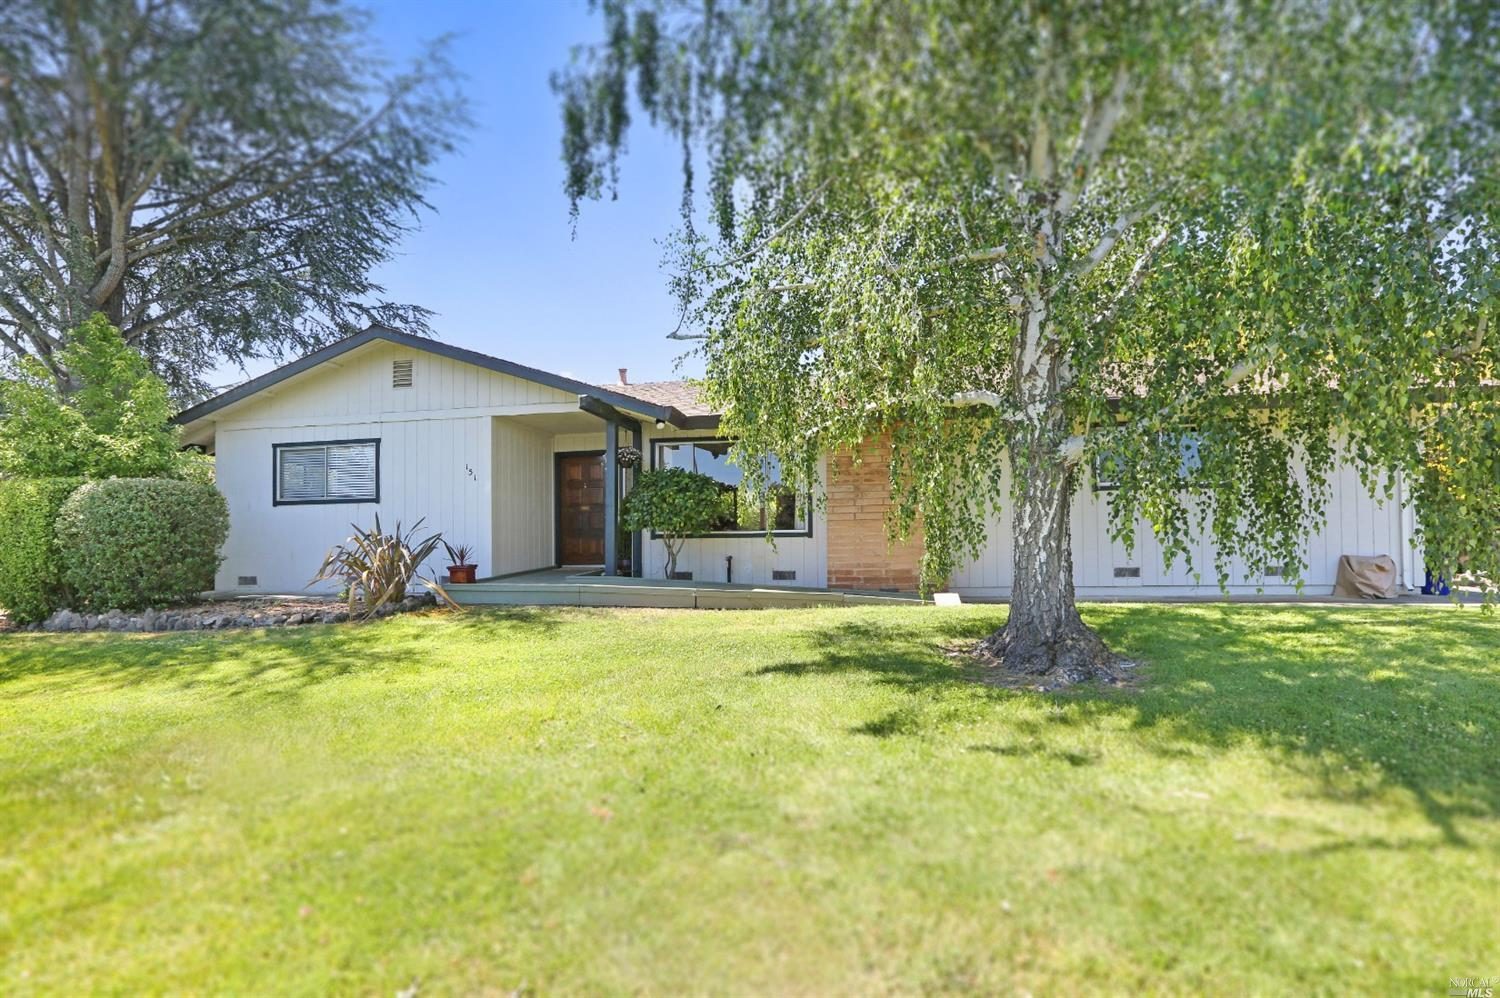 Move-in ready single story, 2 bedroom, 2 bath, home in Sonoma located in the desirable 55+ community of Temelec & uniquely situated, as it backs up to a spacious greenbelt area. Open floor plan with 1,346 sq ft of living area. A cozy breakfast room with double pantries, as well as a formal dining room, both with sliding doors that lead to an outdoor covered deck and courtyard where you can relax and enjoy the lush backyard. The living room has a gas-starter fireplace & lots of natural light. An extra bonus is the large indoor laundry room, perfect for use as an exercise room, home office or art studio and conveniently situated off the breakfast room & the 2 car garage. HOA's give you access to Historic Temelec Hall, community pools & walking trails along the vineyards. The Sonoma Plaza, fine dining and wineries are all only minutes away. Yes, you can live in Sonoma affordably and still check off all your boxes!